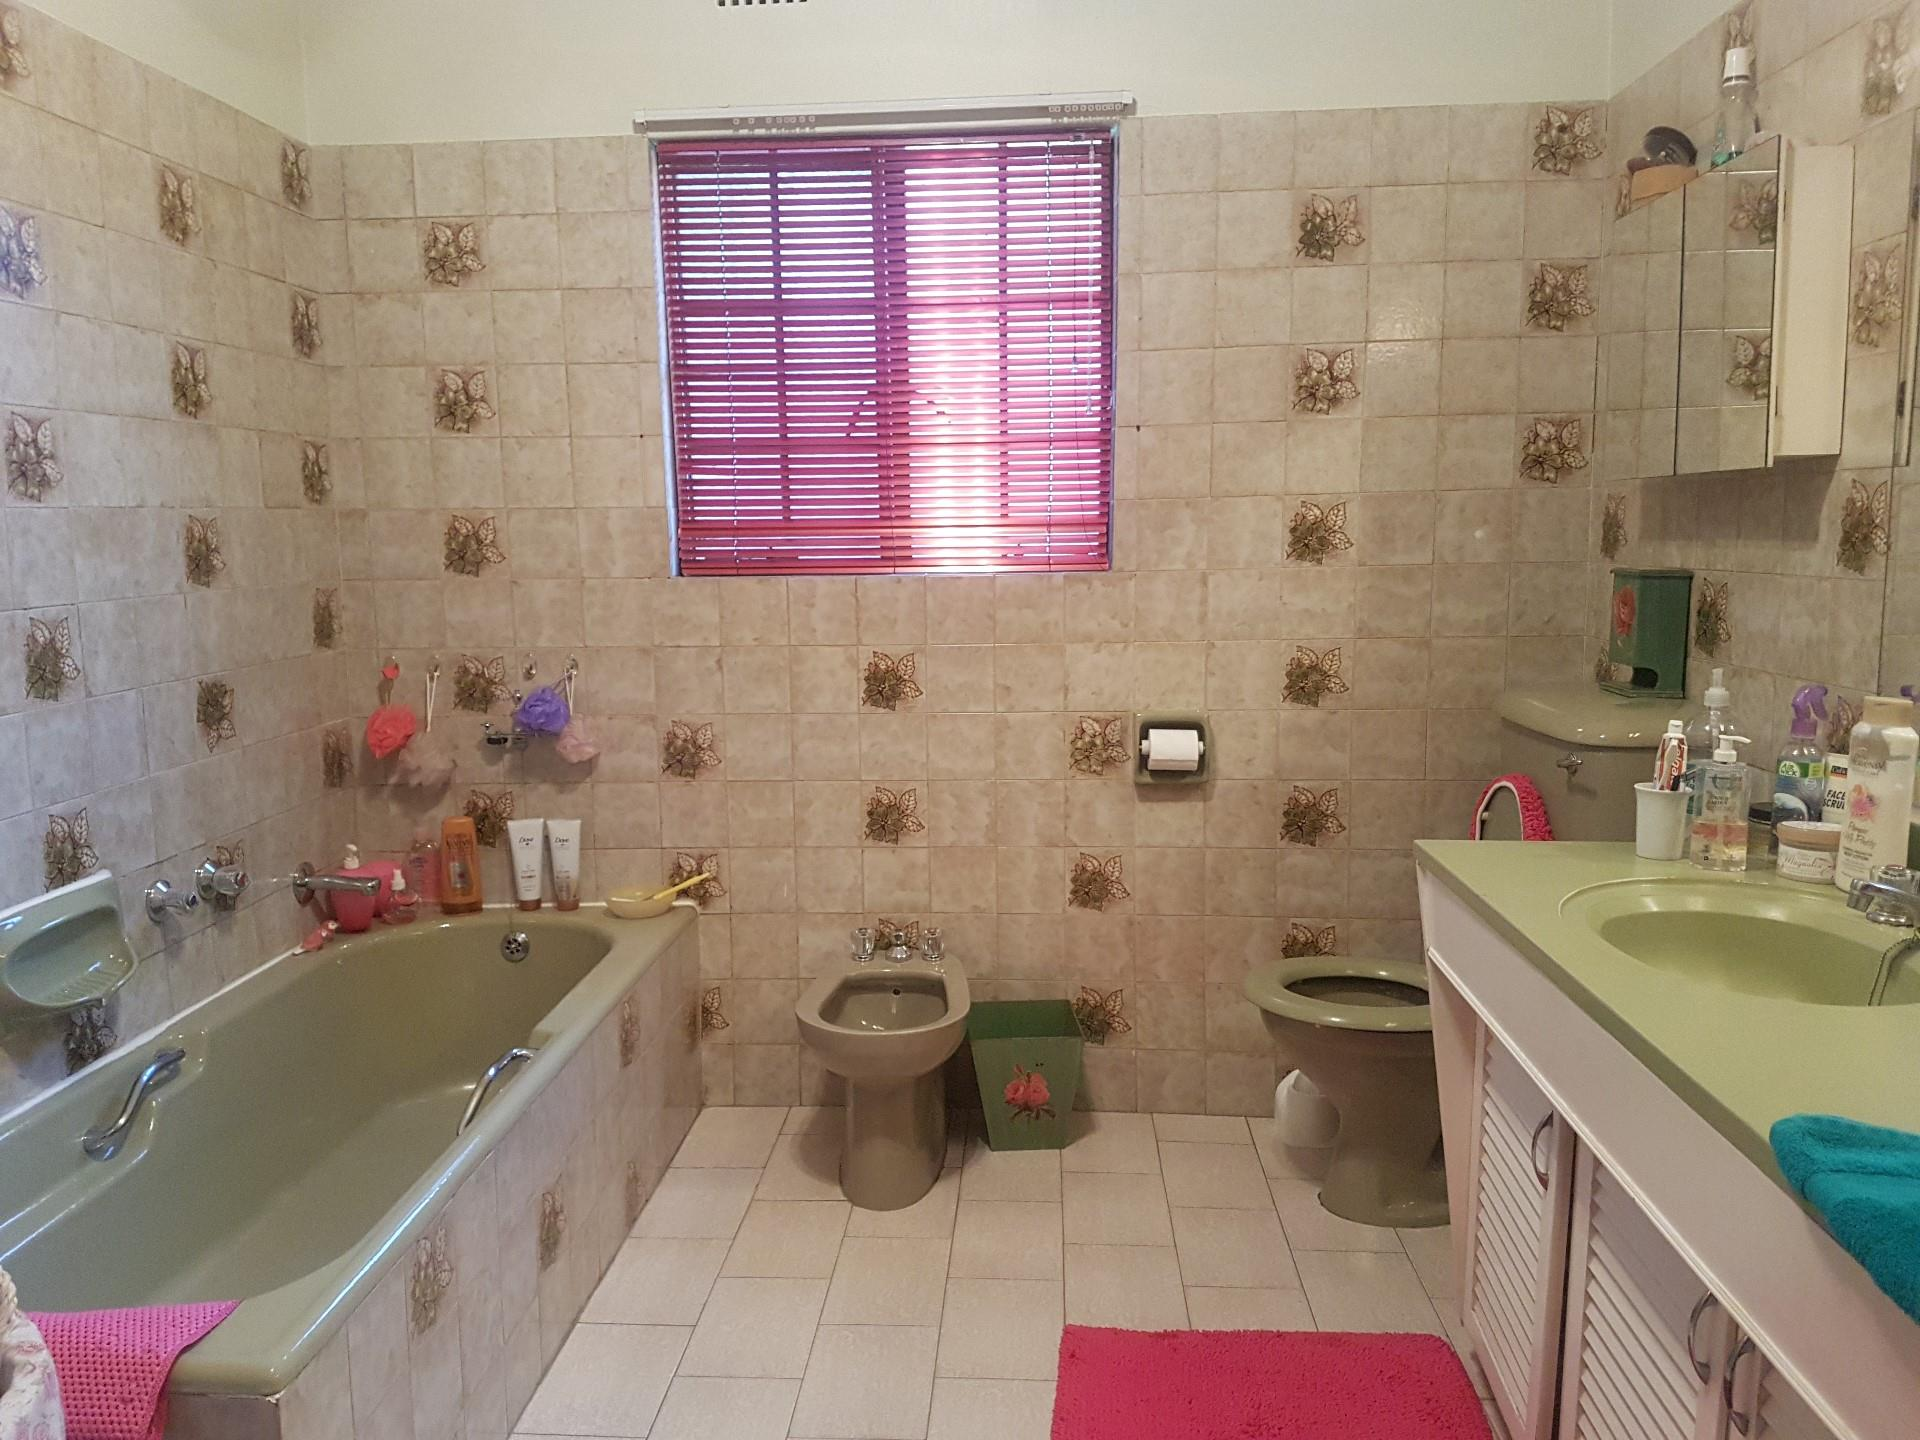 4 Bedroom House For Sale in Rietspruit